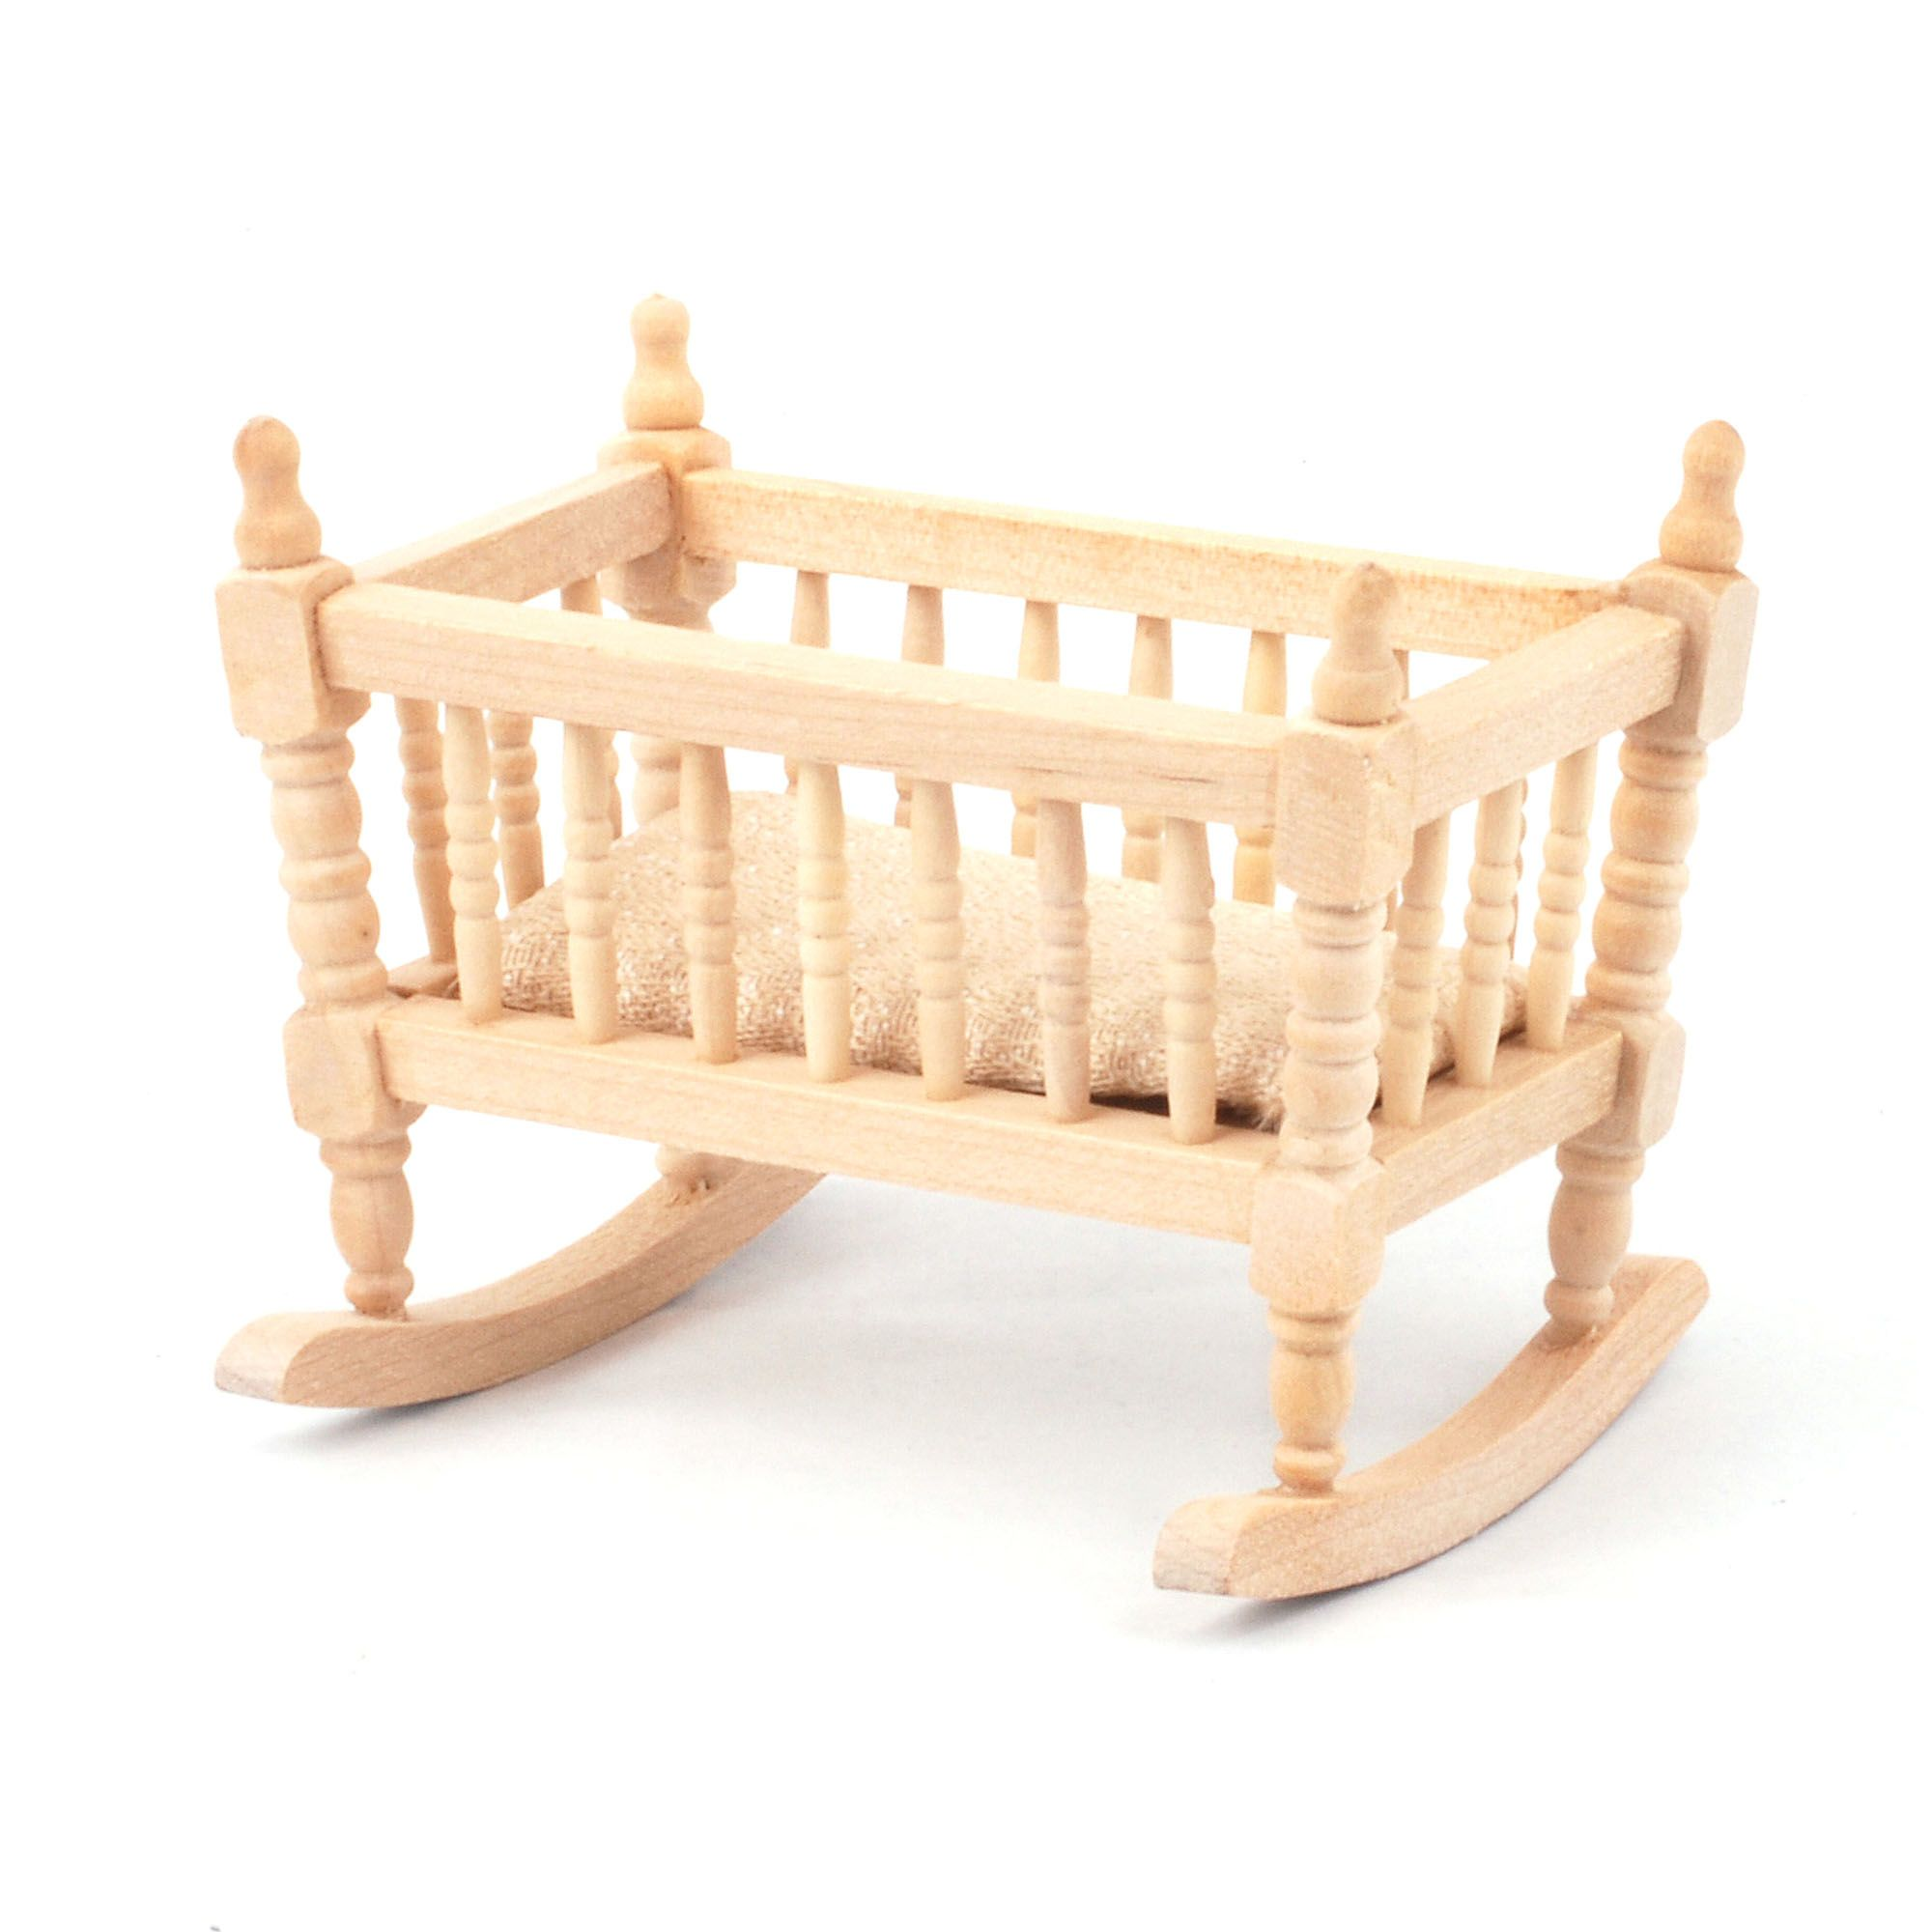 BEF067 - 1:12 Scale Rocking Chair - Online Dolls House Superstore